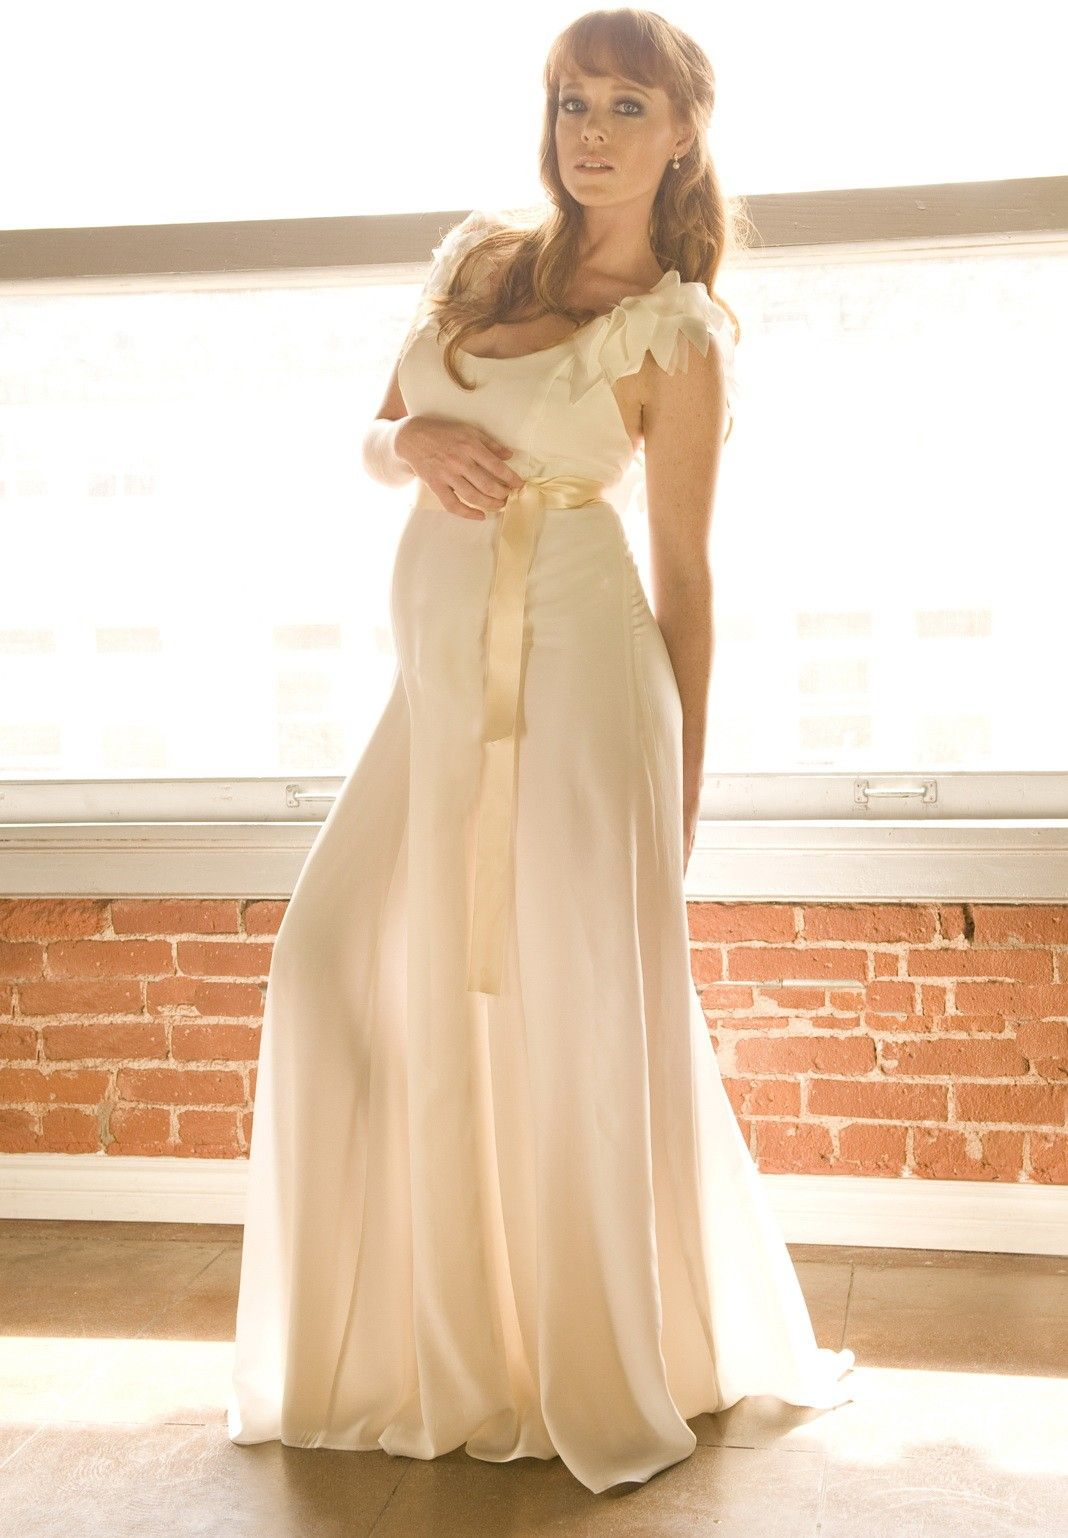 Maternity dresses for weddings  Scoop Romantic Maternity Wedding Dress Summer SPECIAL PRICE